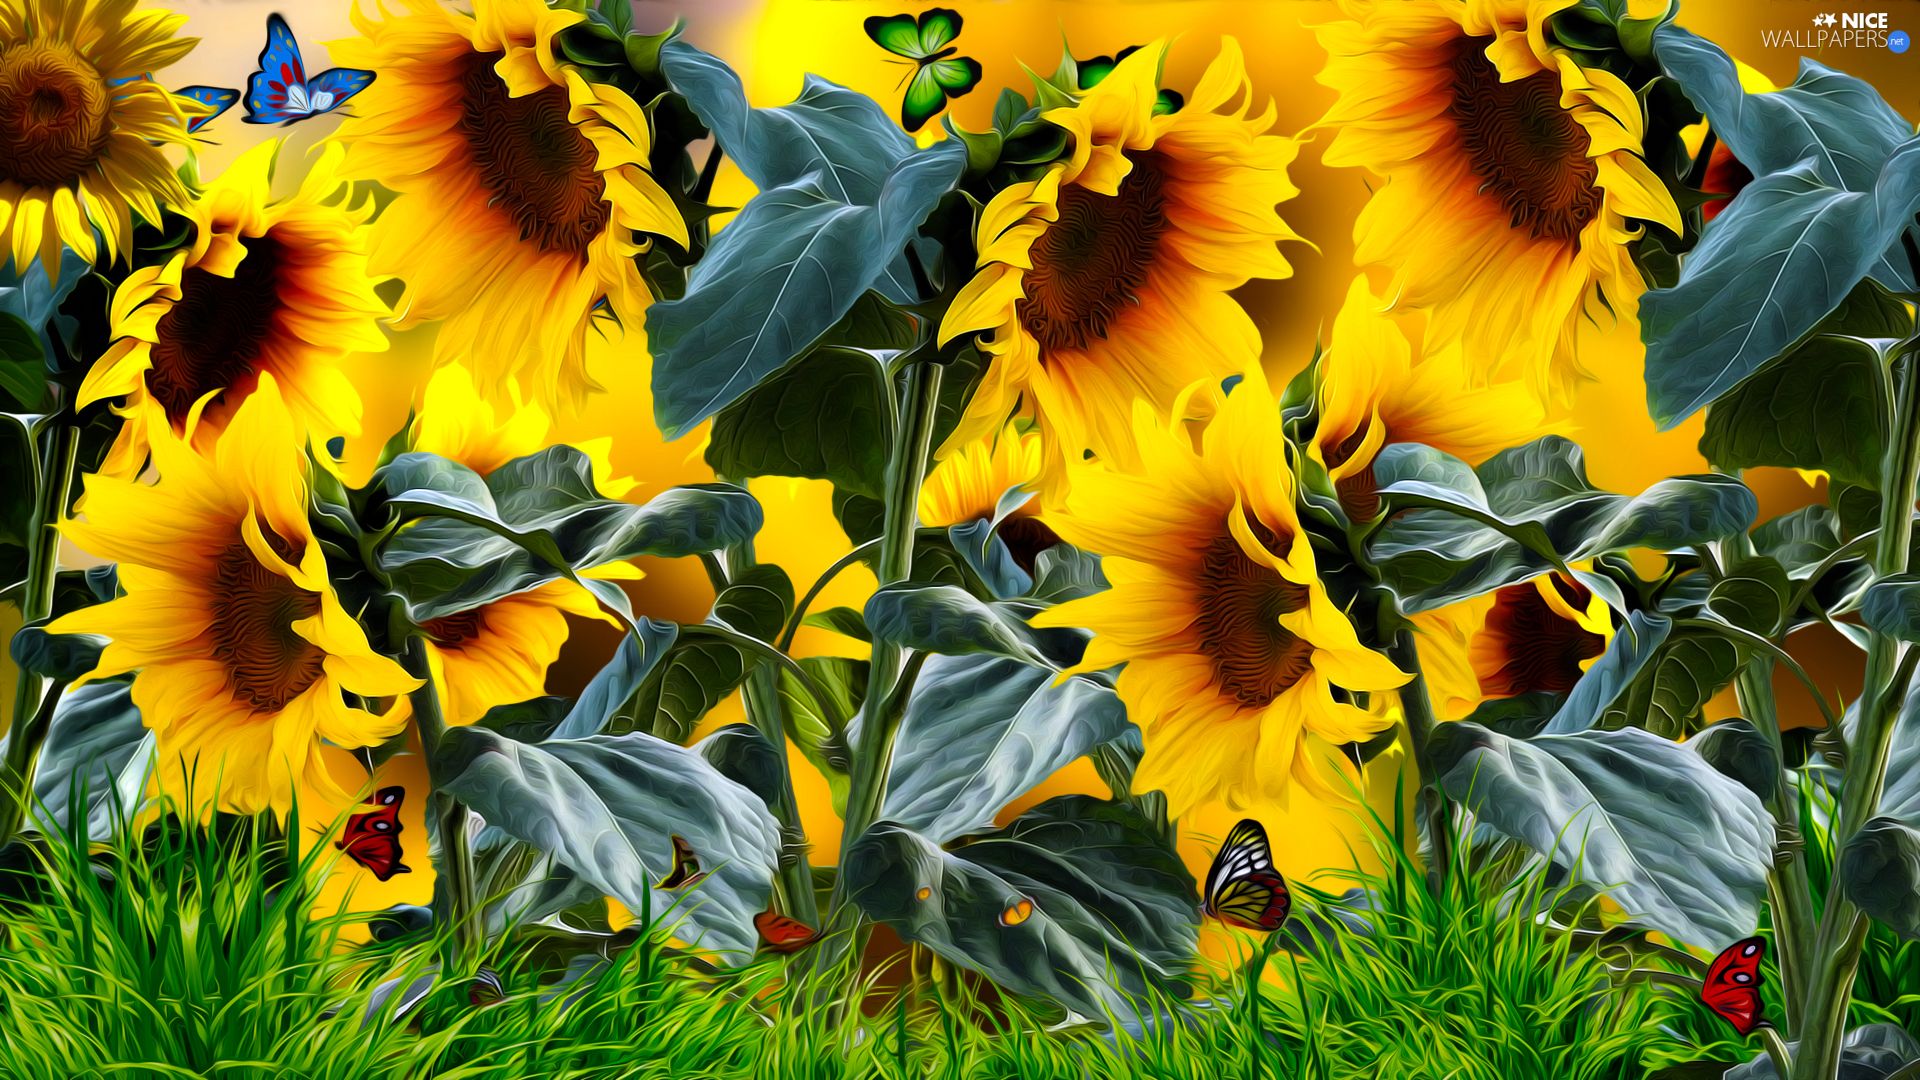 Nice sunflowers, grass, graphics, butterfly